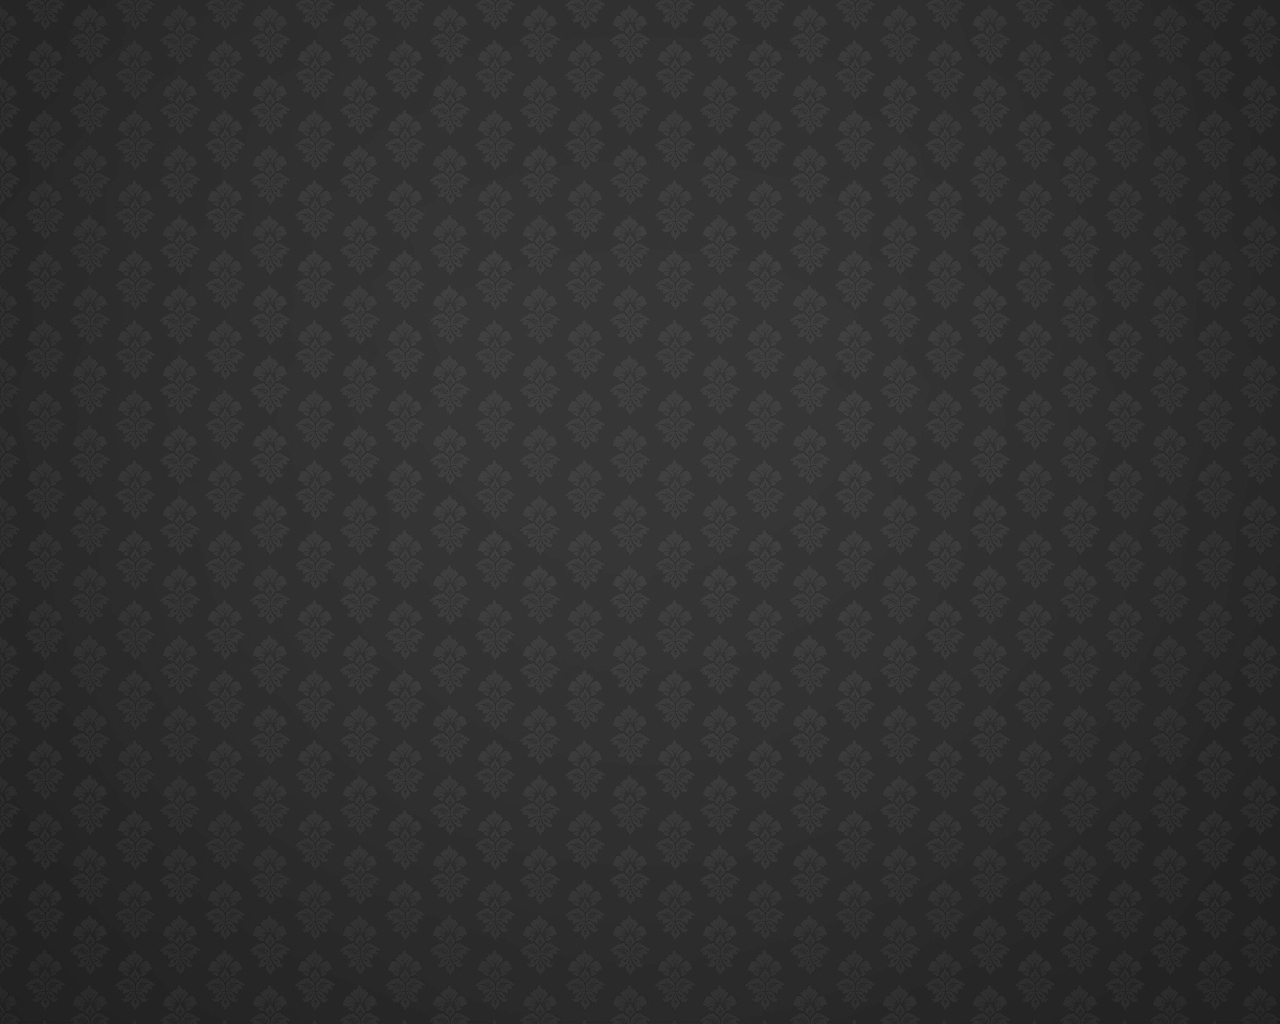 black and grey wallpapers 2015   Grasscloth Wallpaper 1280x1024